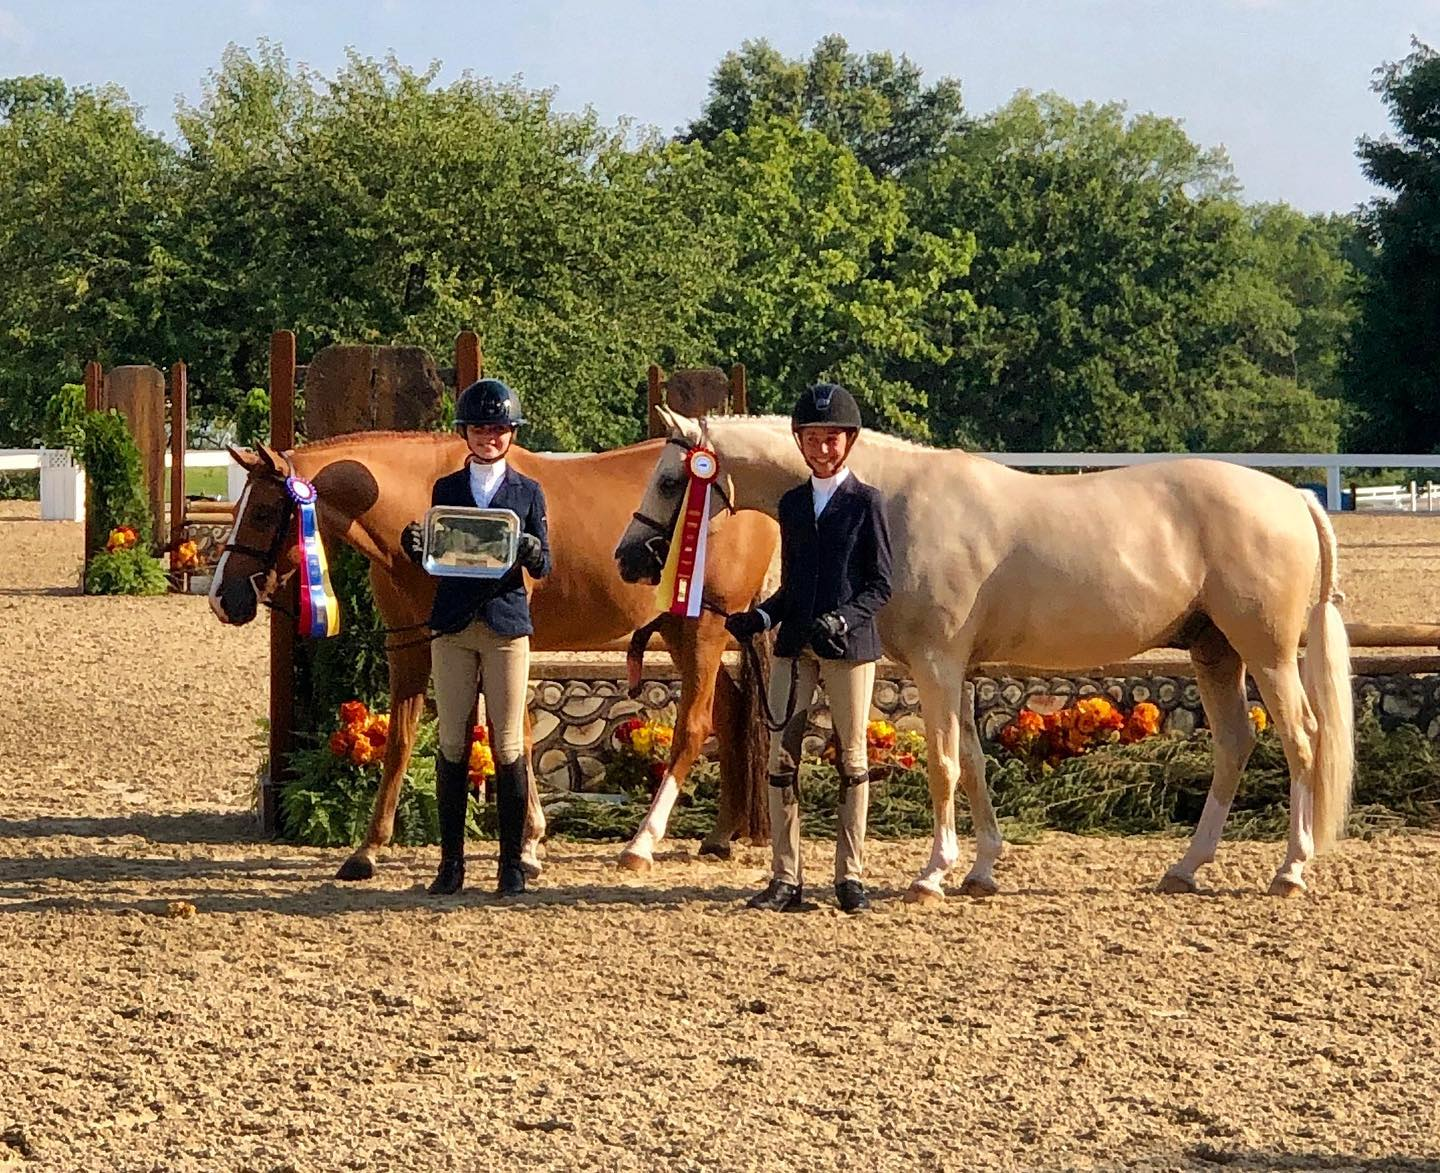 It's so fun to share special moments with your friends! Congrats Sterling and Kat on the Large Pony tricolors. It's been a great week!